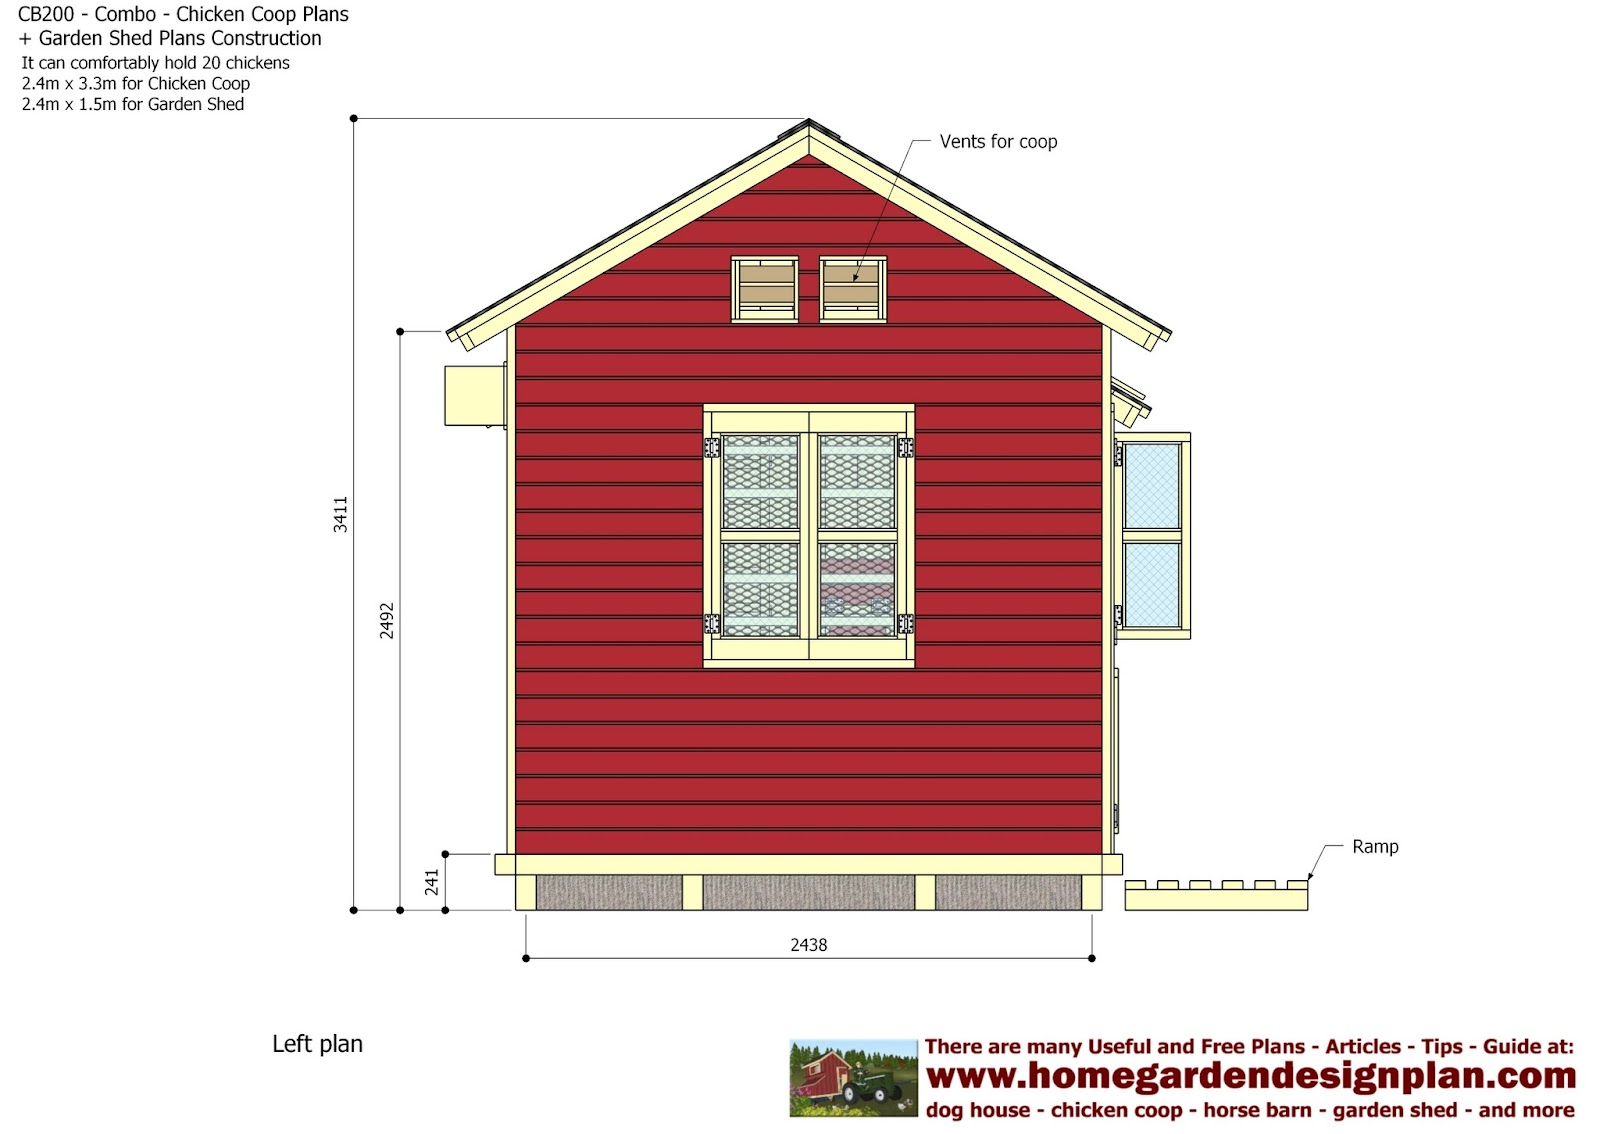 garden sheds 5m x 3m perfect garden sheds 5m x 3m corner lodge plus log cabin